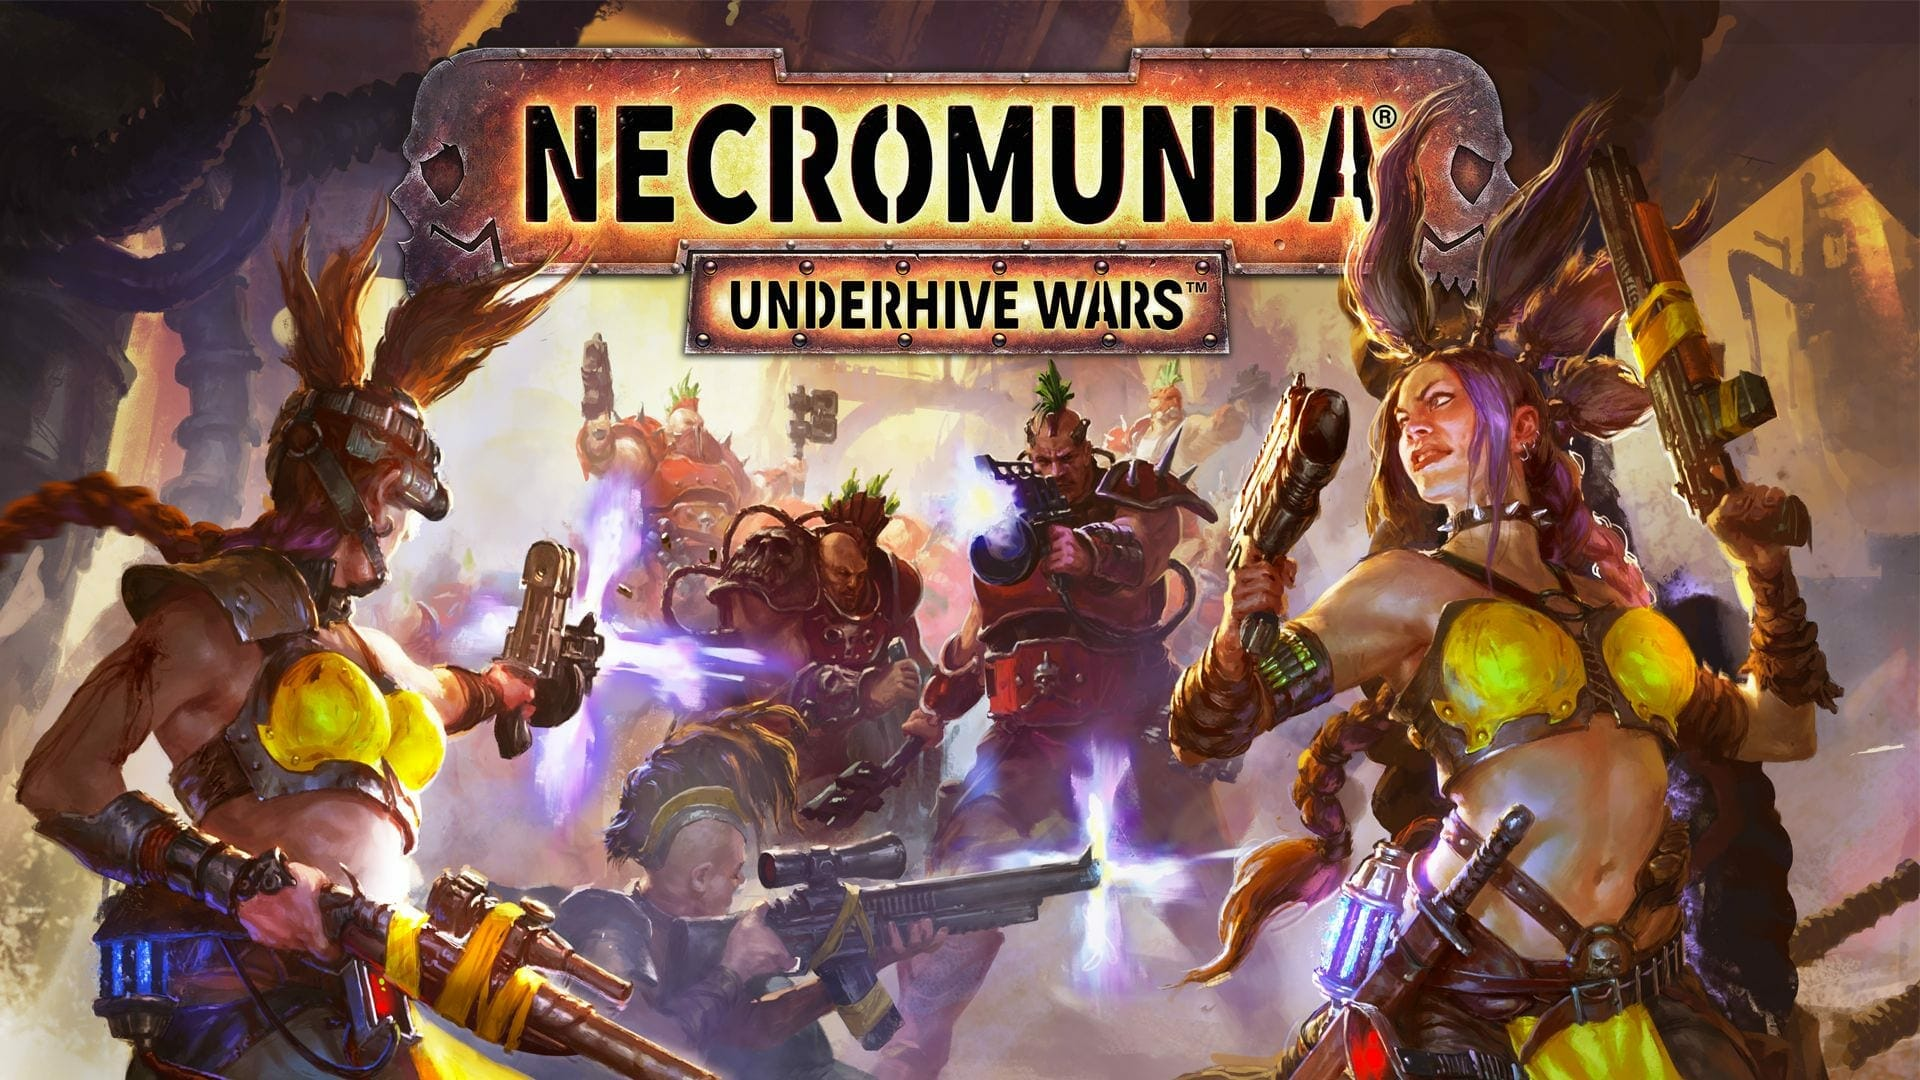 Necromunda: Underhive Wars System Requirements